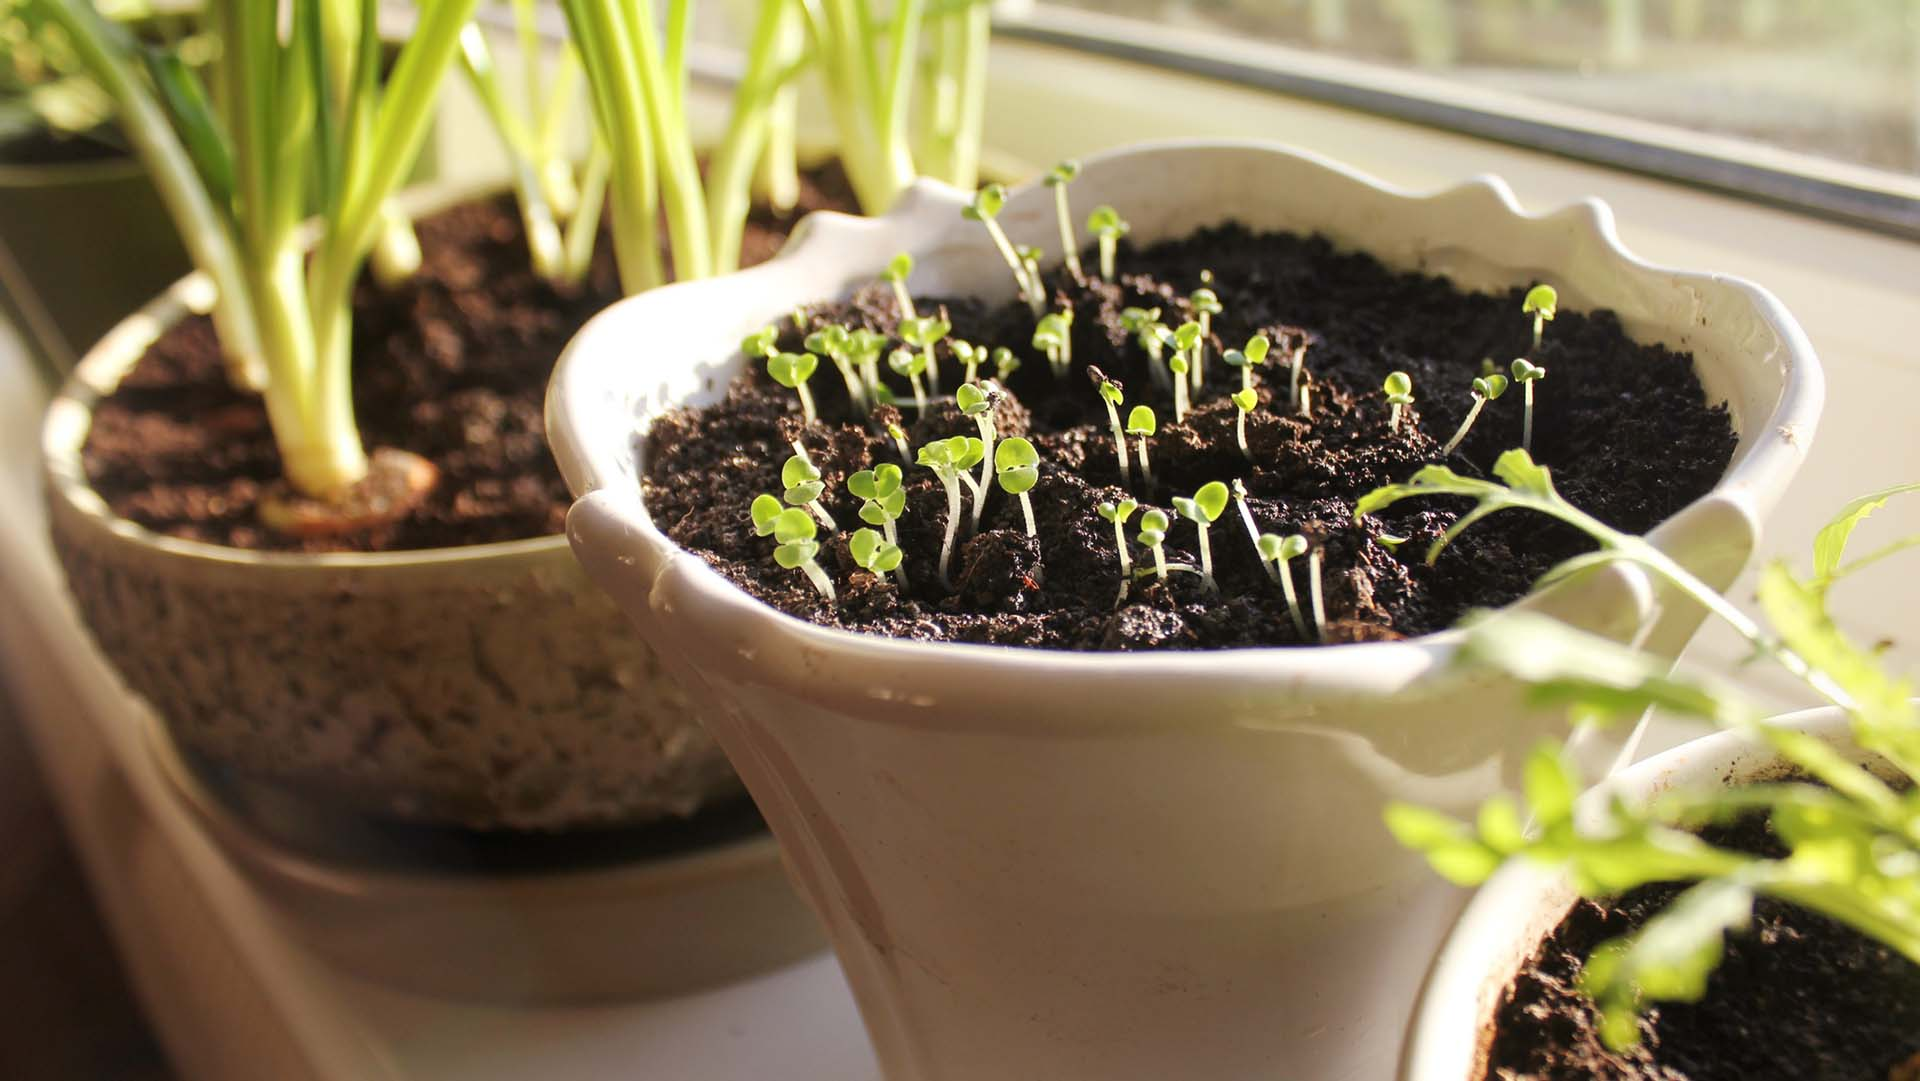 be_how to plant seedlings